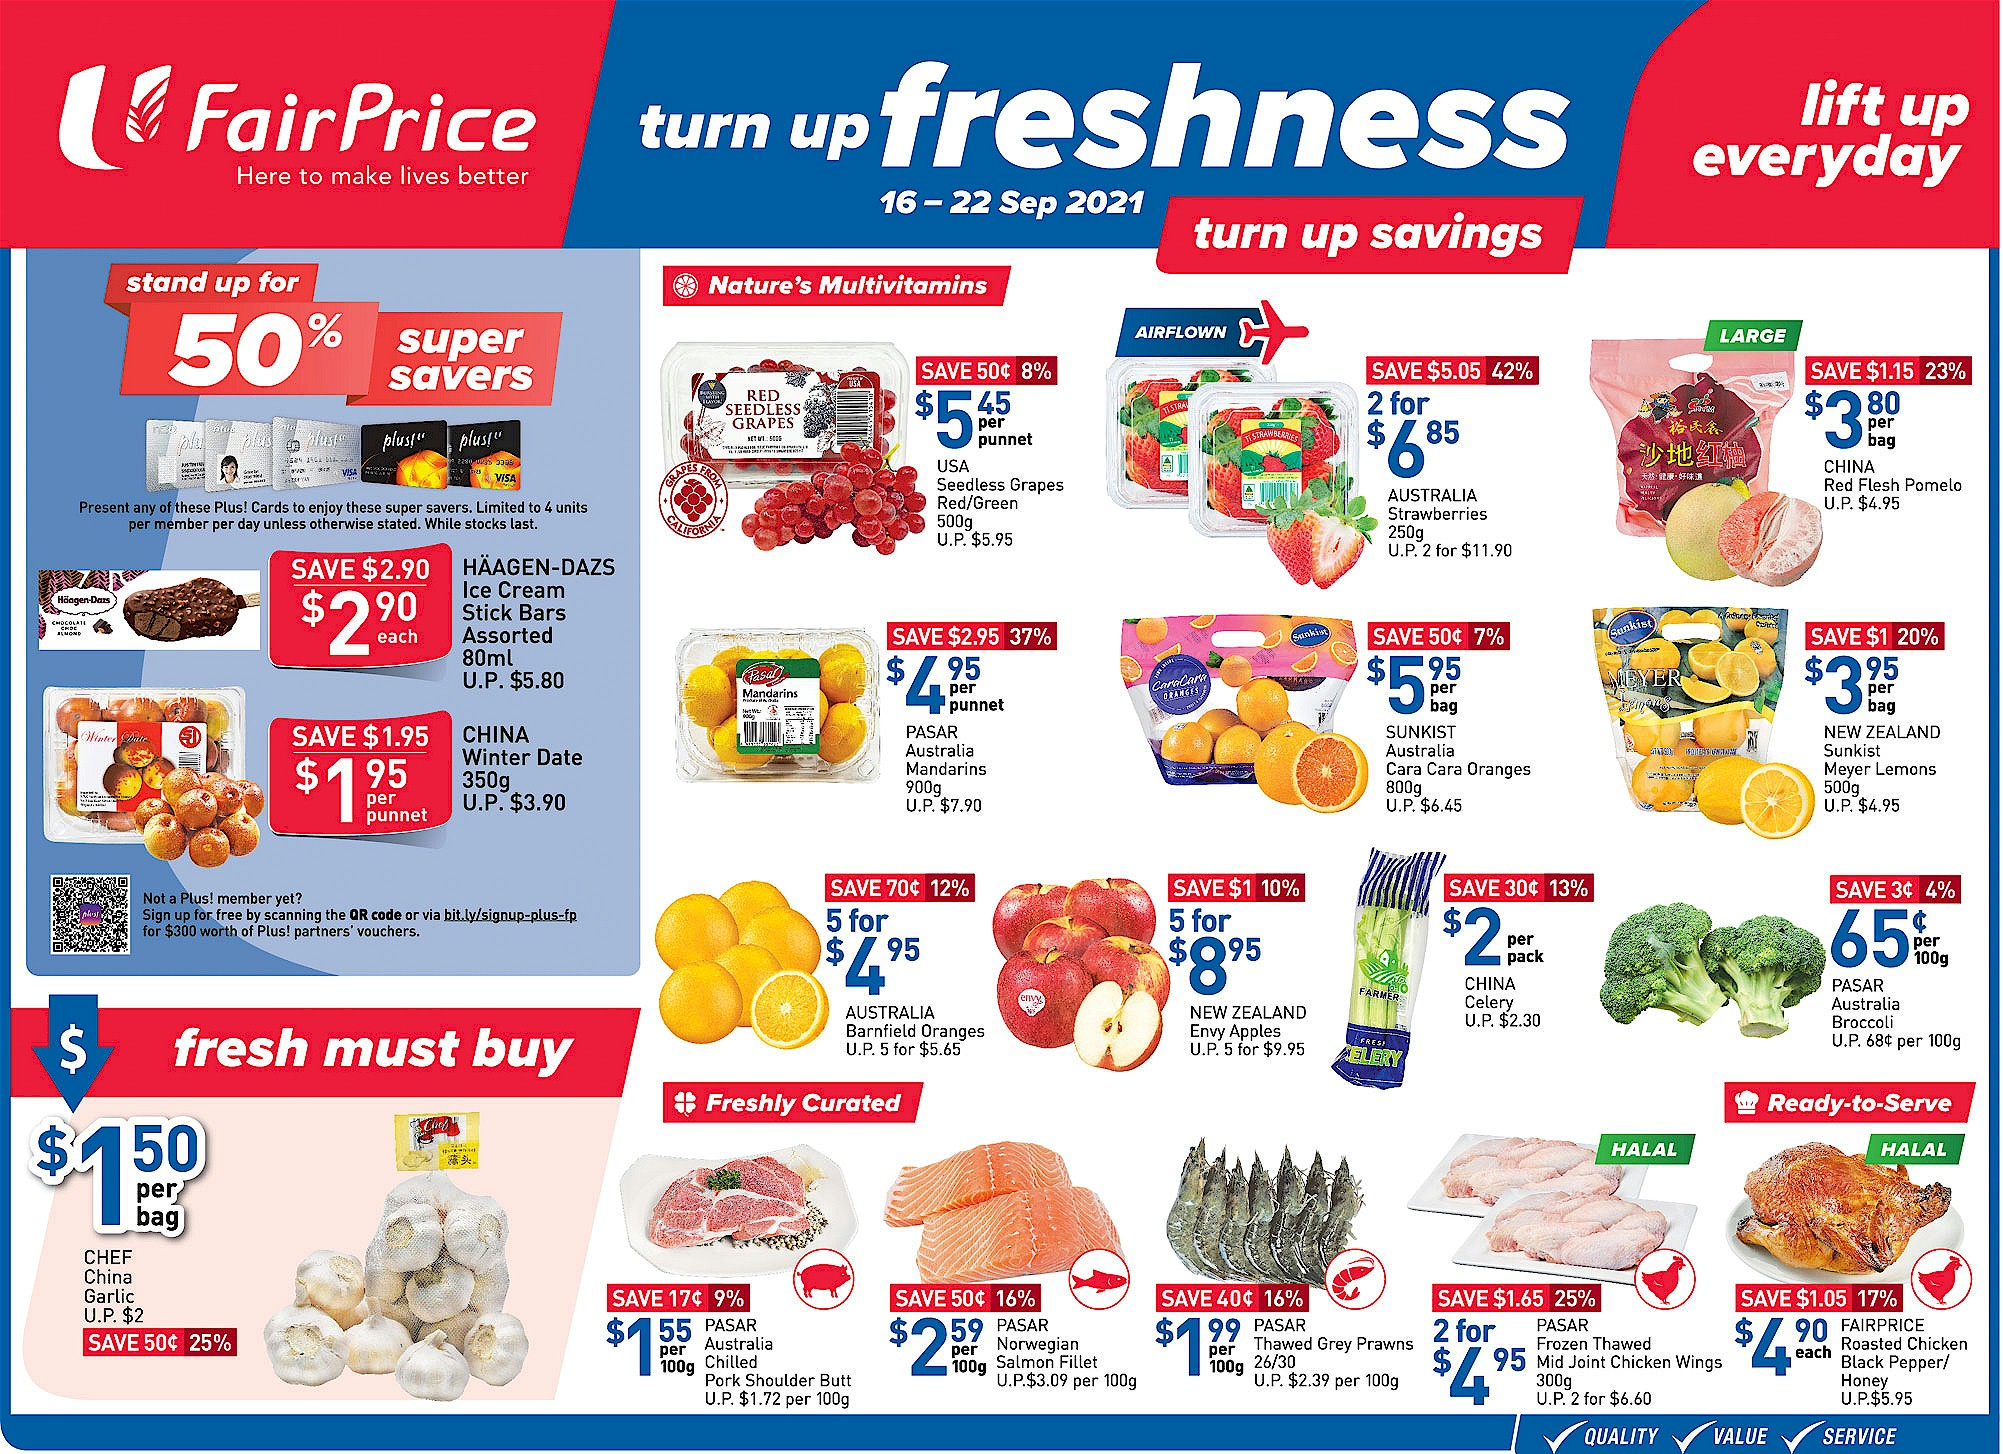 all-singapore-deals-fairprice-weekly-saver-2